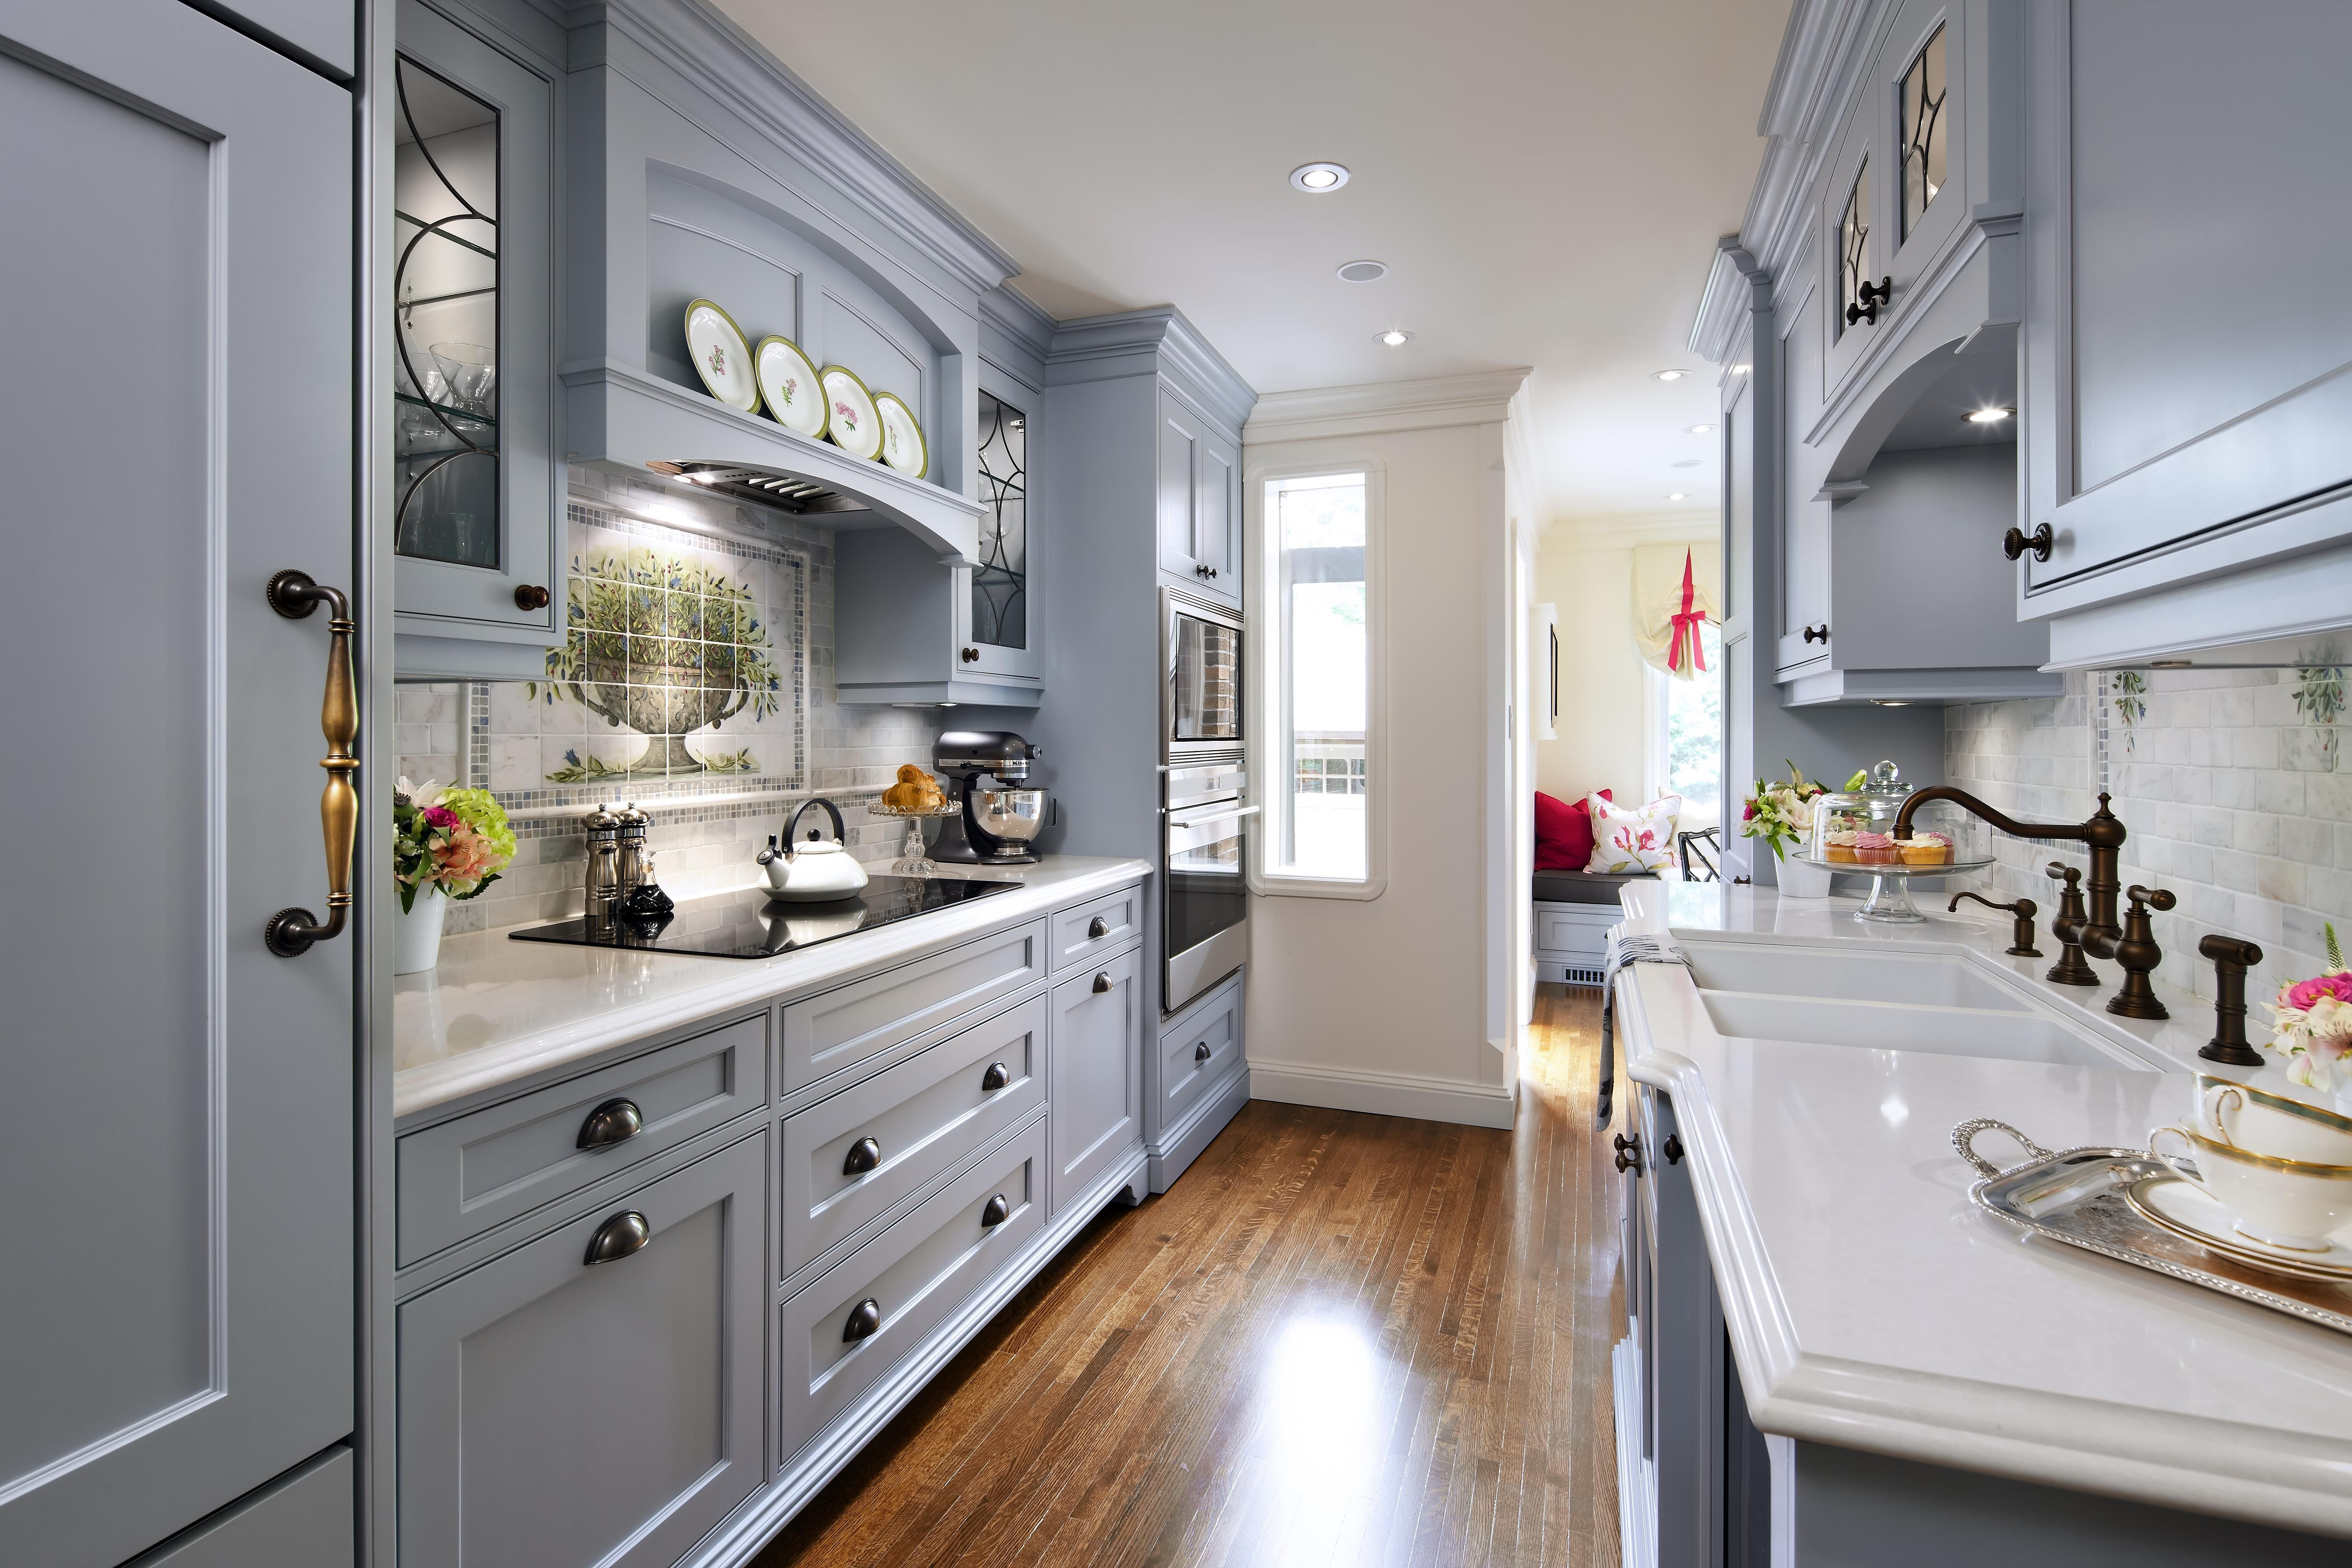 Shawn mccune kitchen design gallery - 1000 Images About 2014 Design Competition Finalist On Pinterest Seaside Design Competitions And A Cow